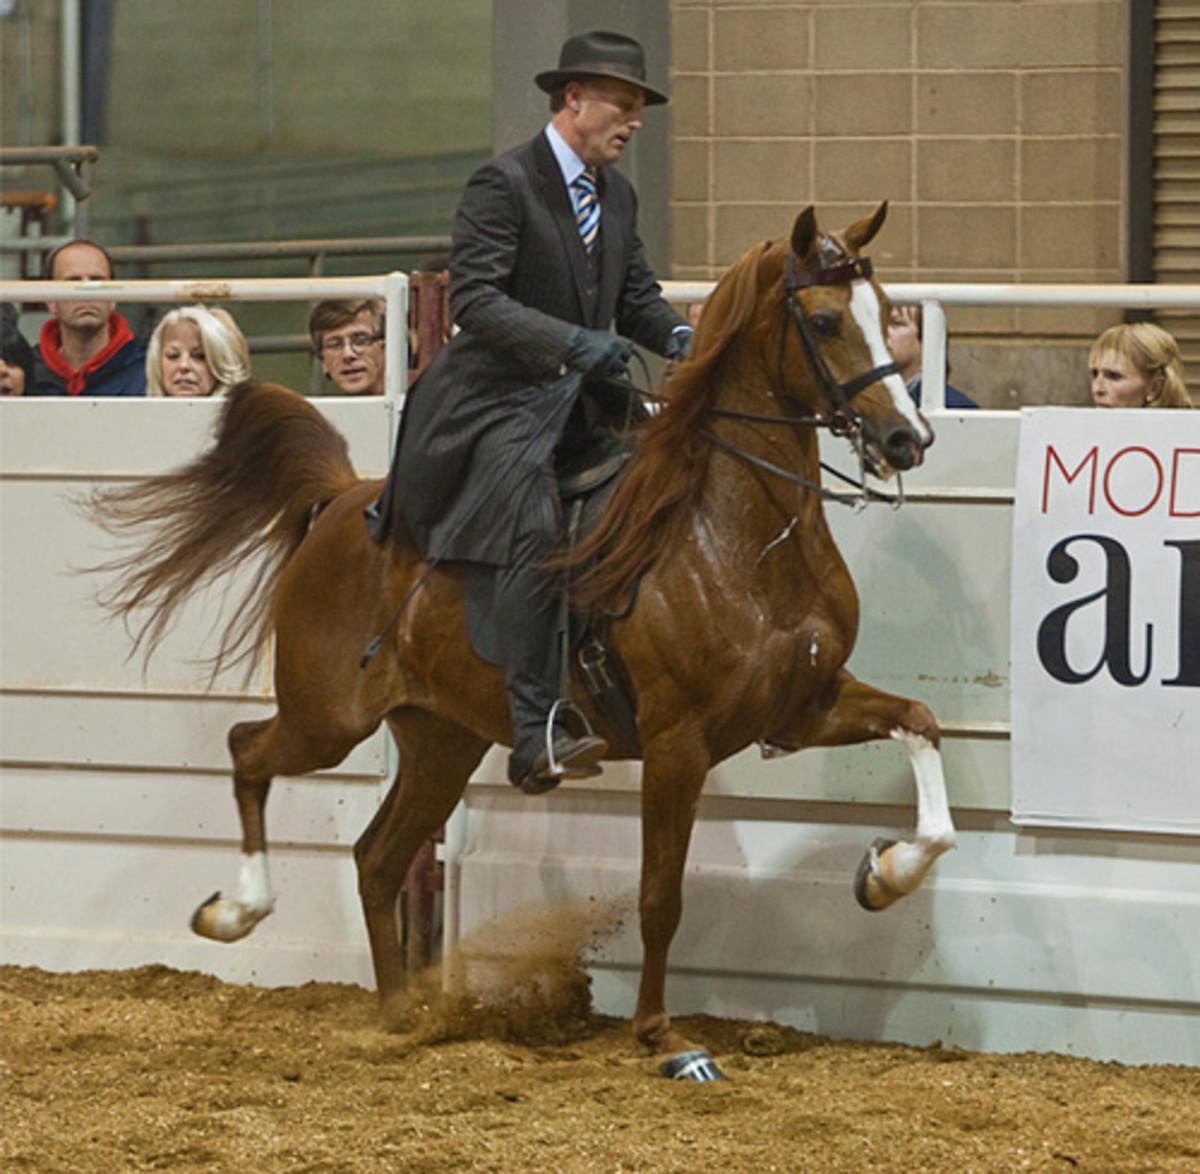 Arabians are believed to be the oldest purebred horses in existence.